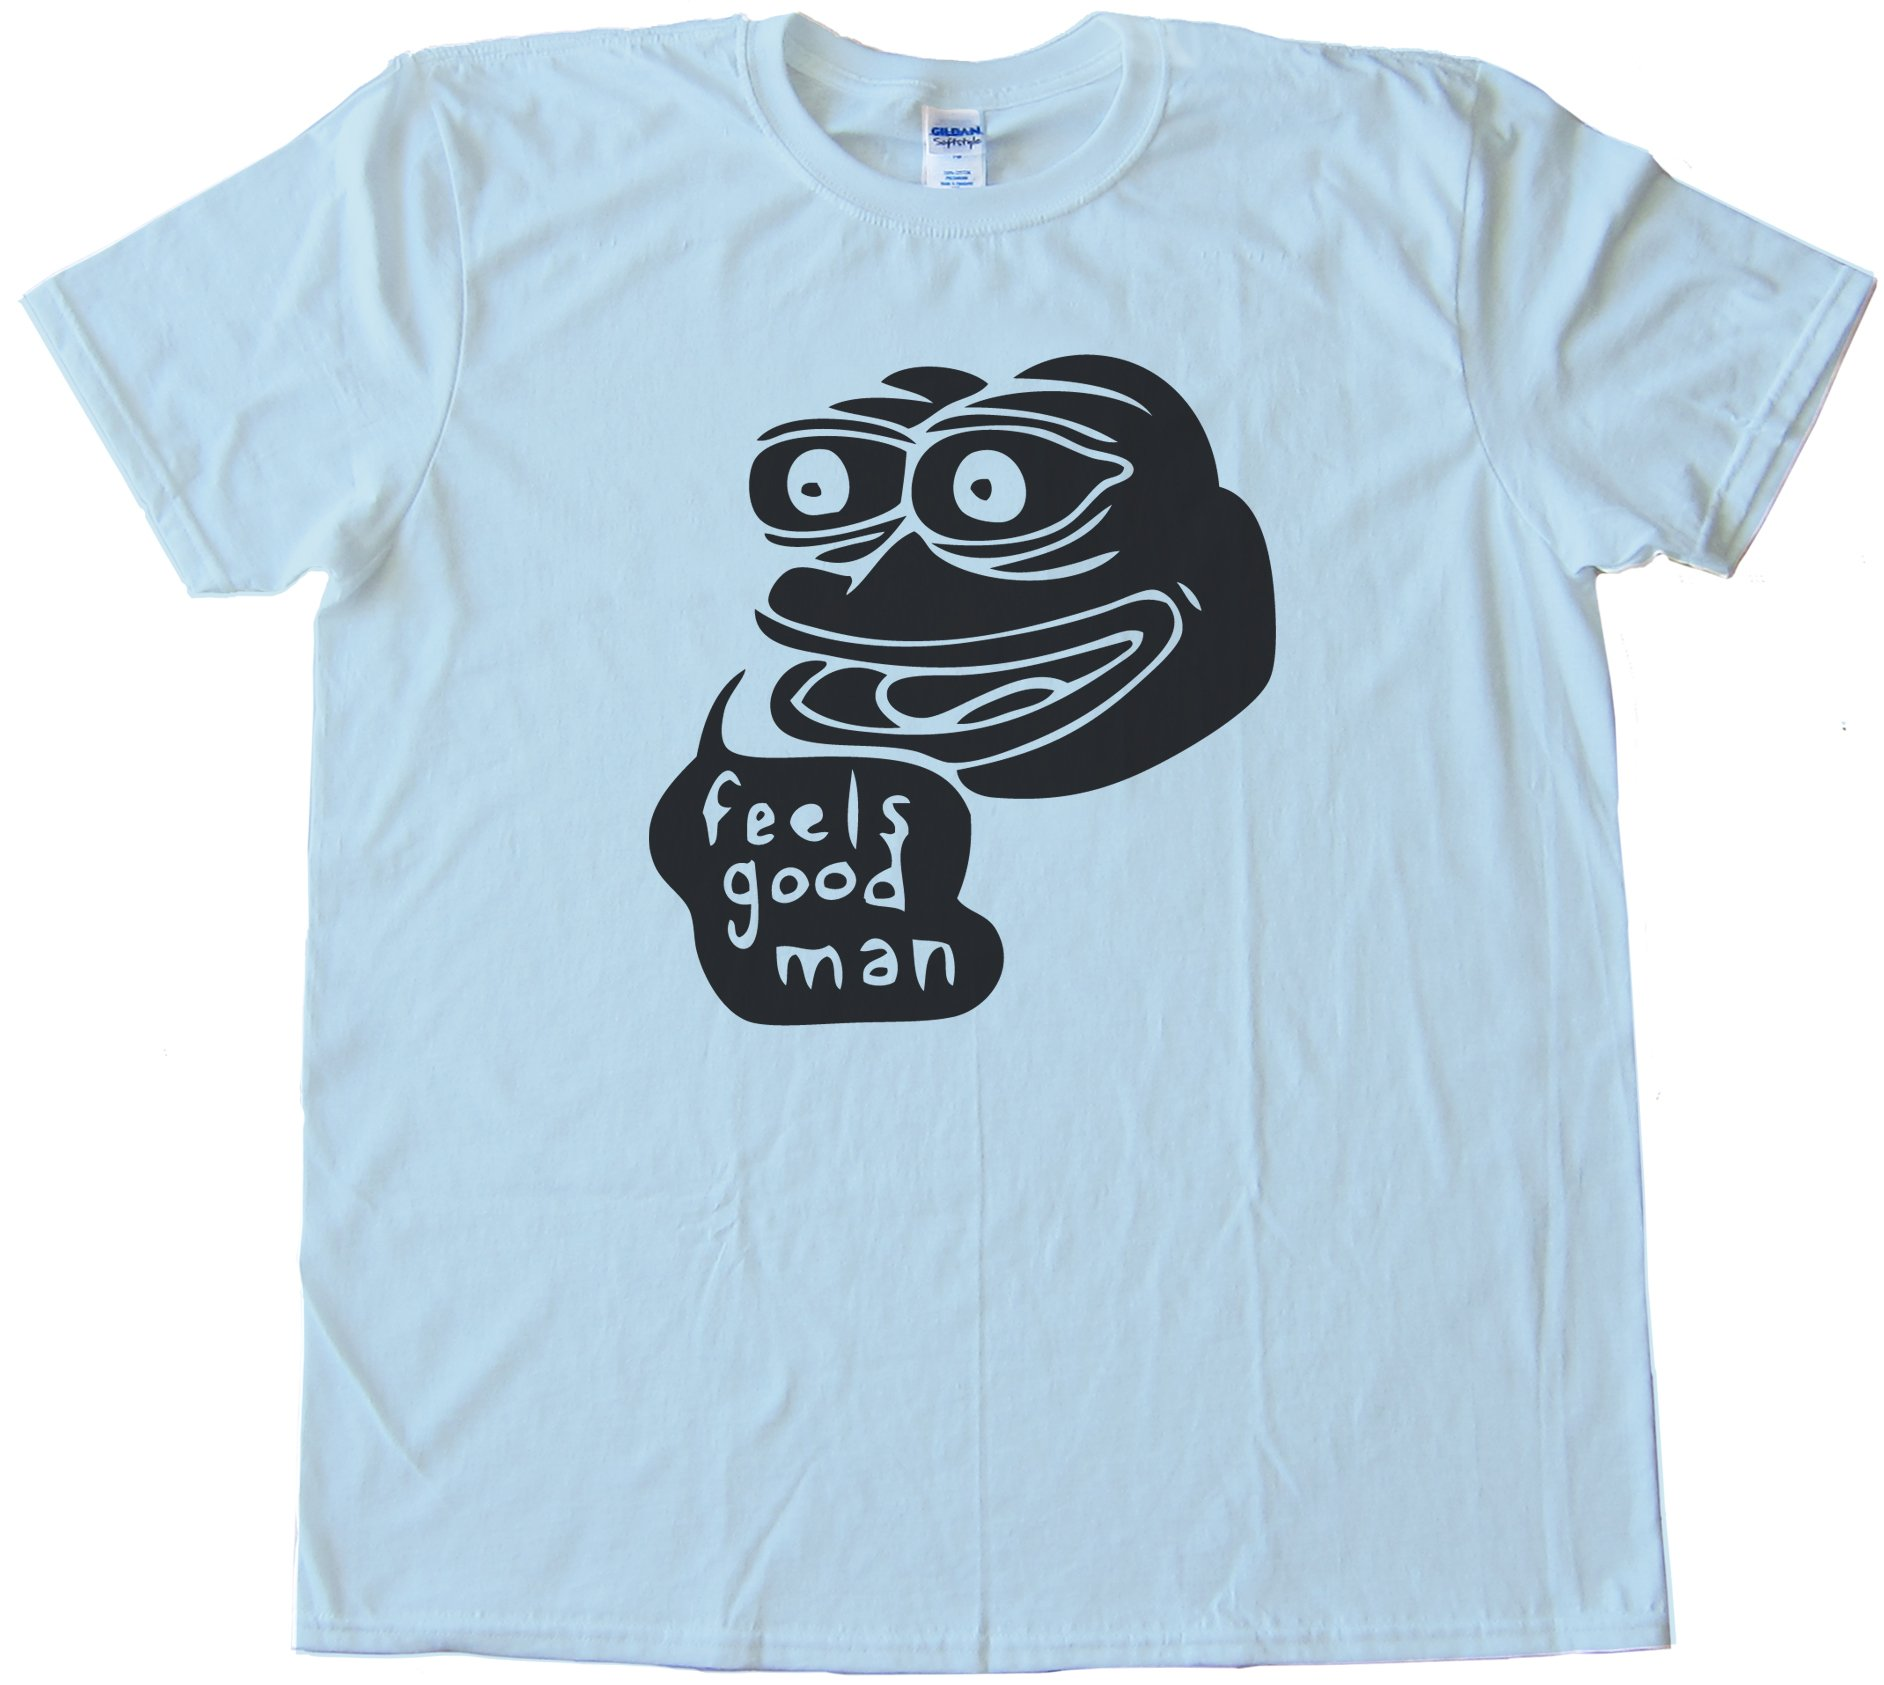 Feels Good Man! Tee Shirt